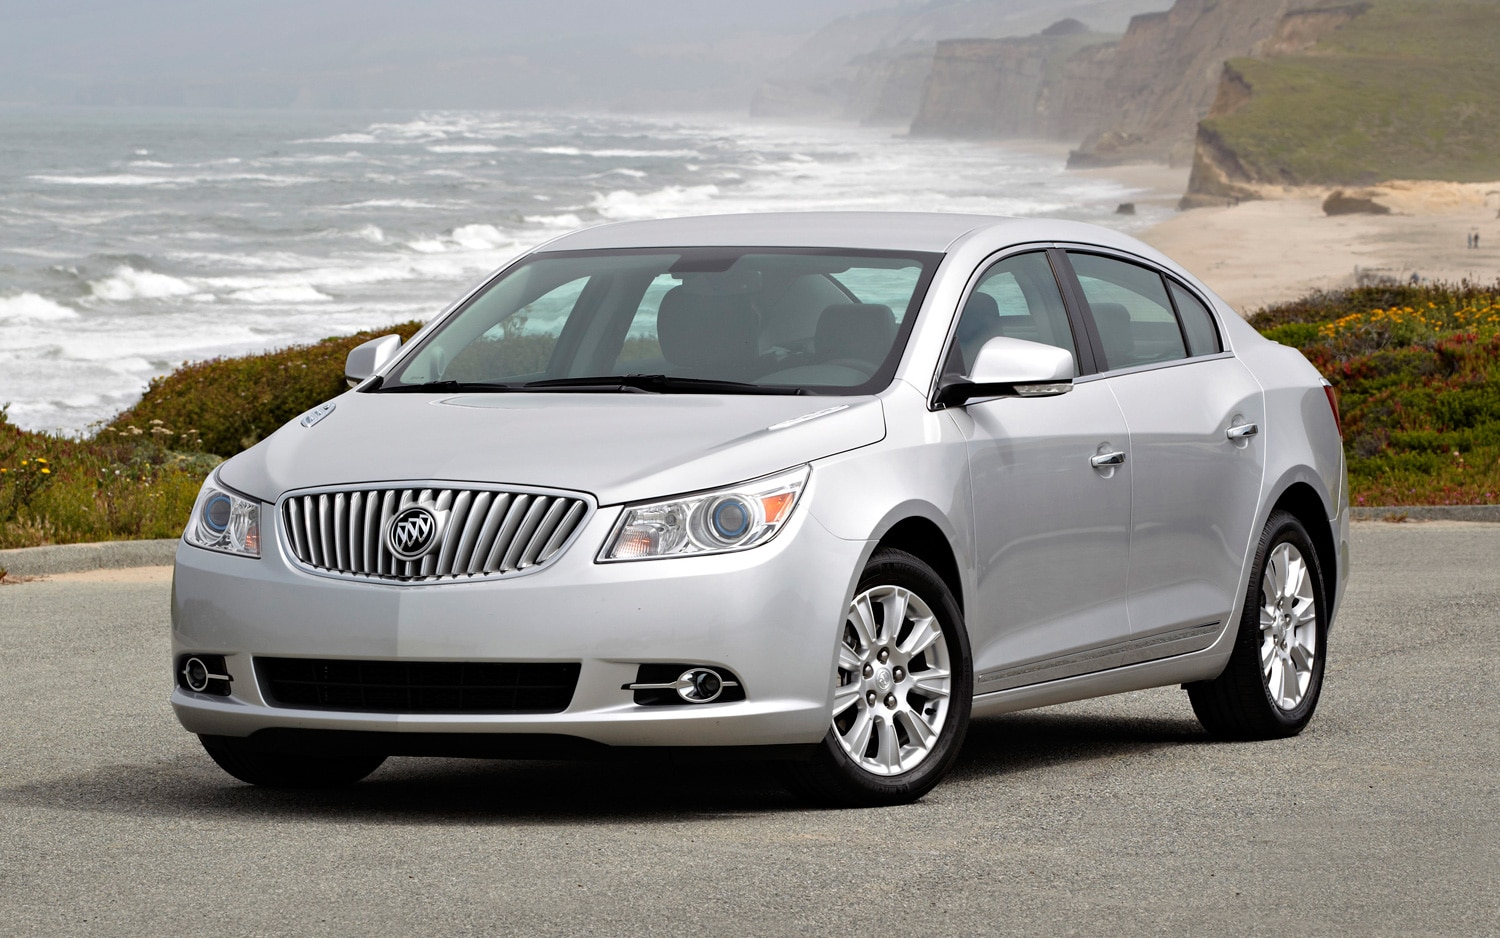 2013 Buick LaCrosse Front Three Quarter1